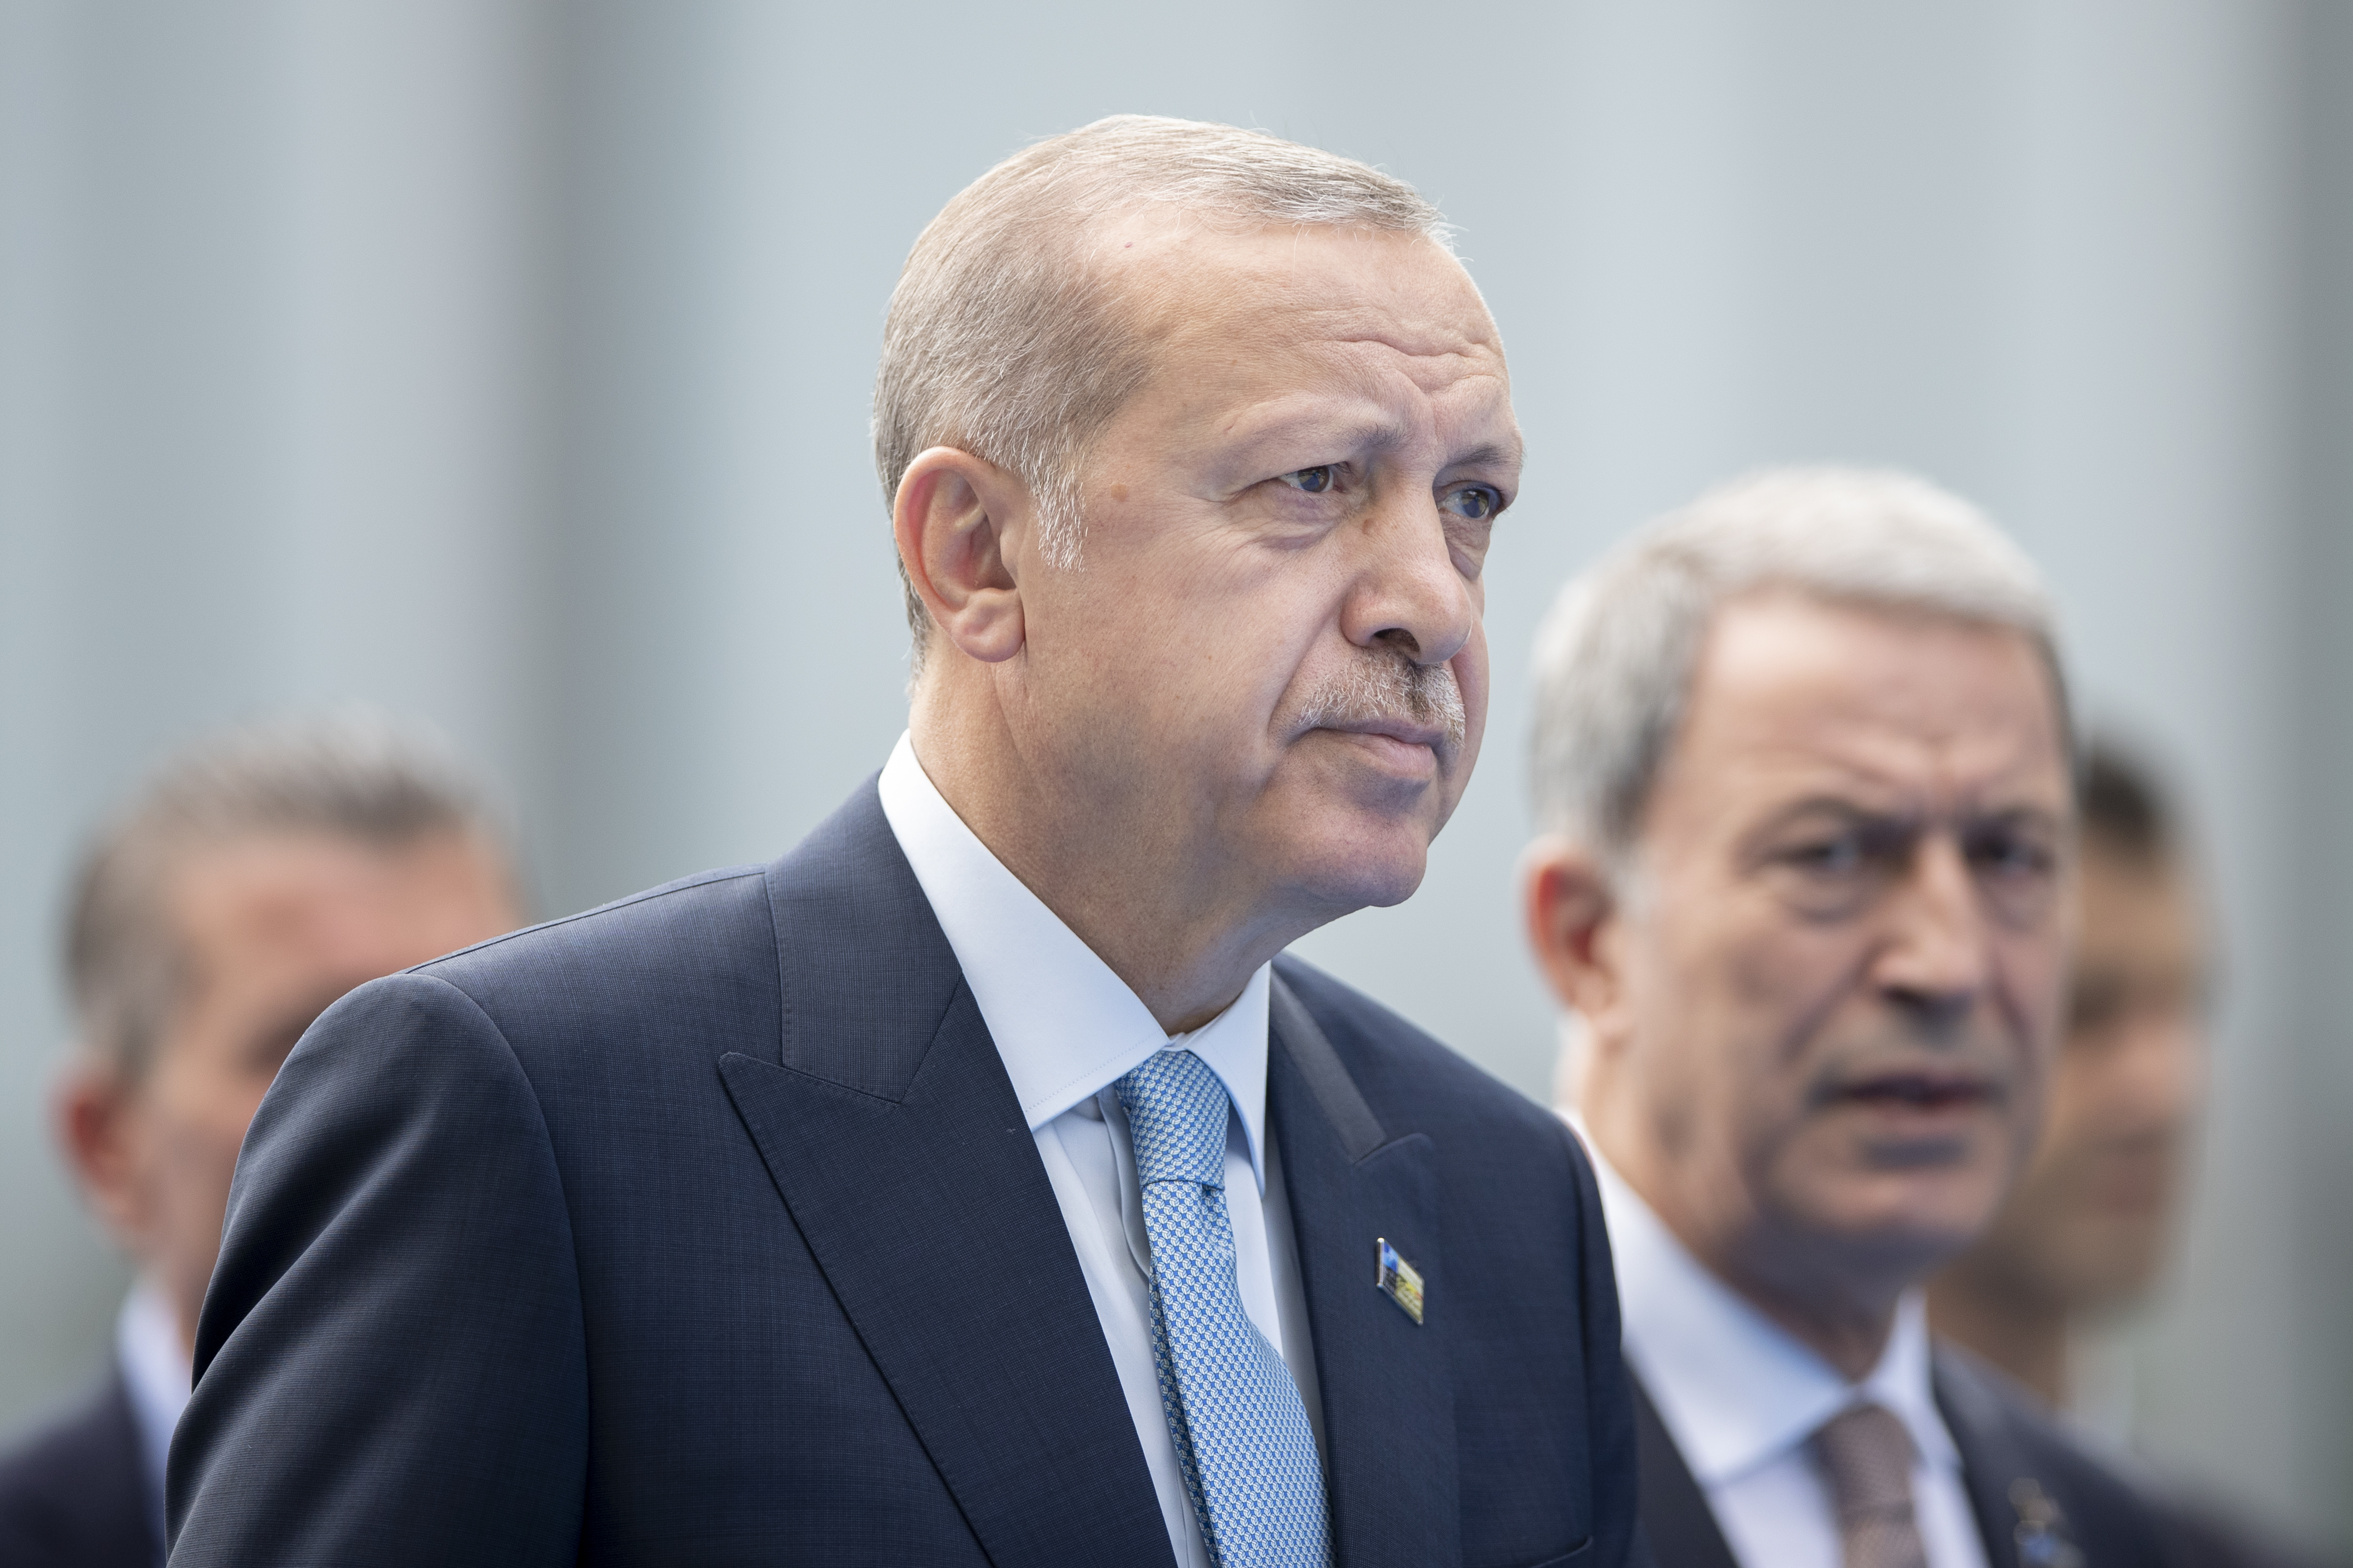 Turkish President Recep Tayyip Erdogan couldn't stop Russia, Iran, and Syria from starting a massive military offensive in Idlib.